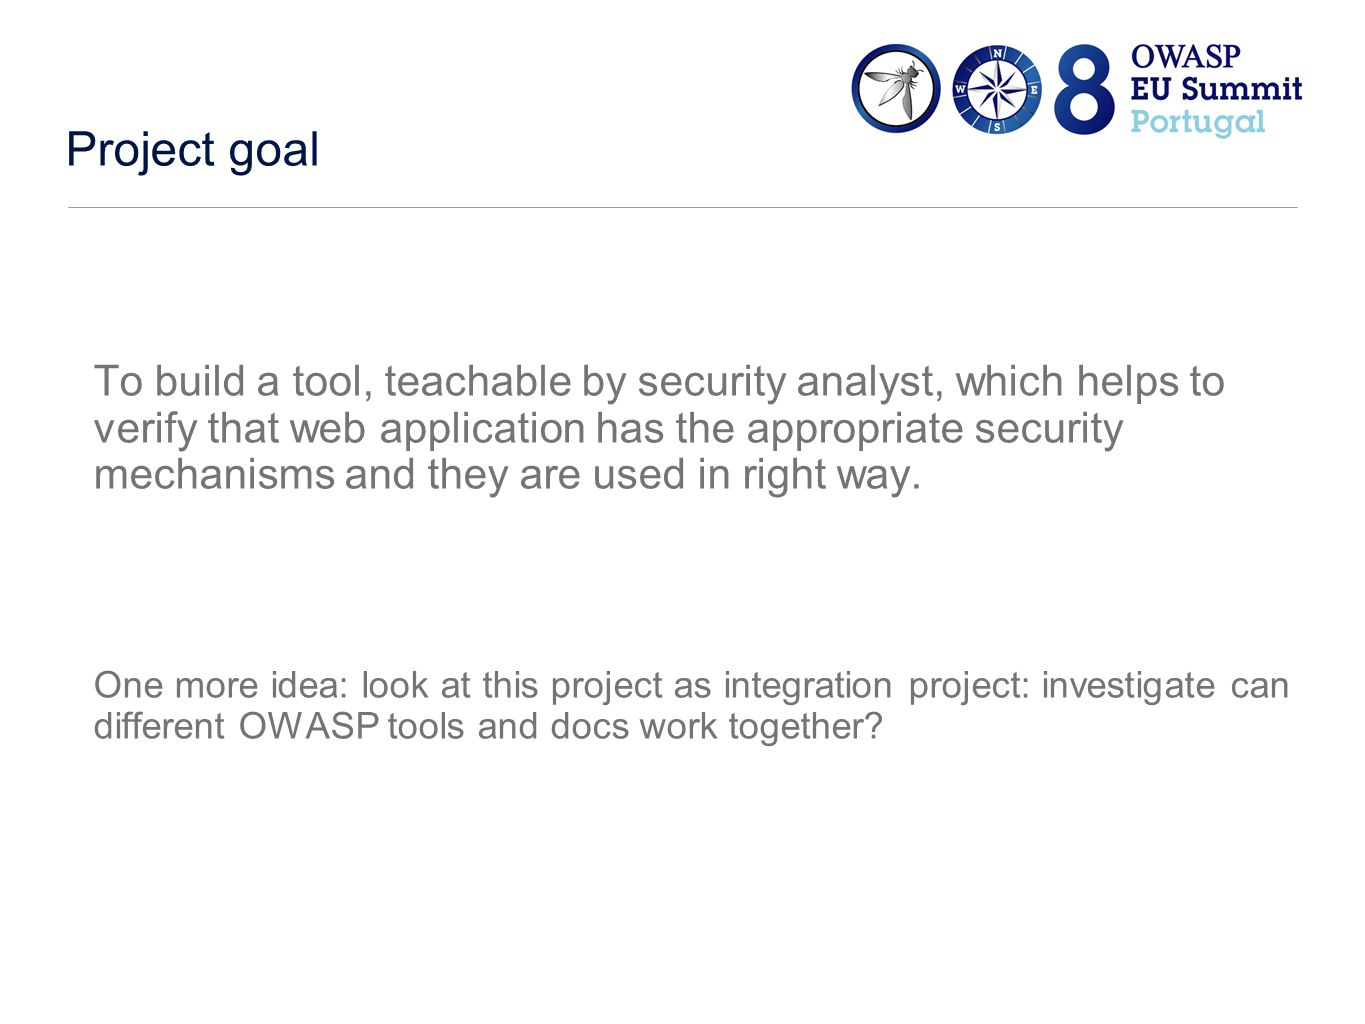 Project goal To build a tool, teachable by security analyst, which helps to verify that web application has the appropriate security mechanisms and they are used in right way.